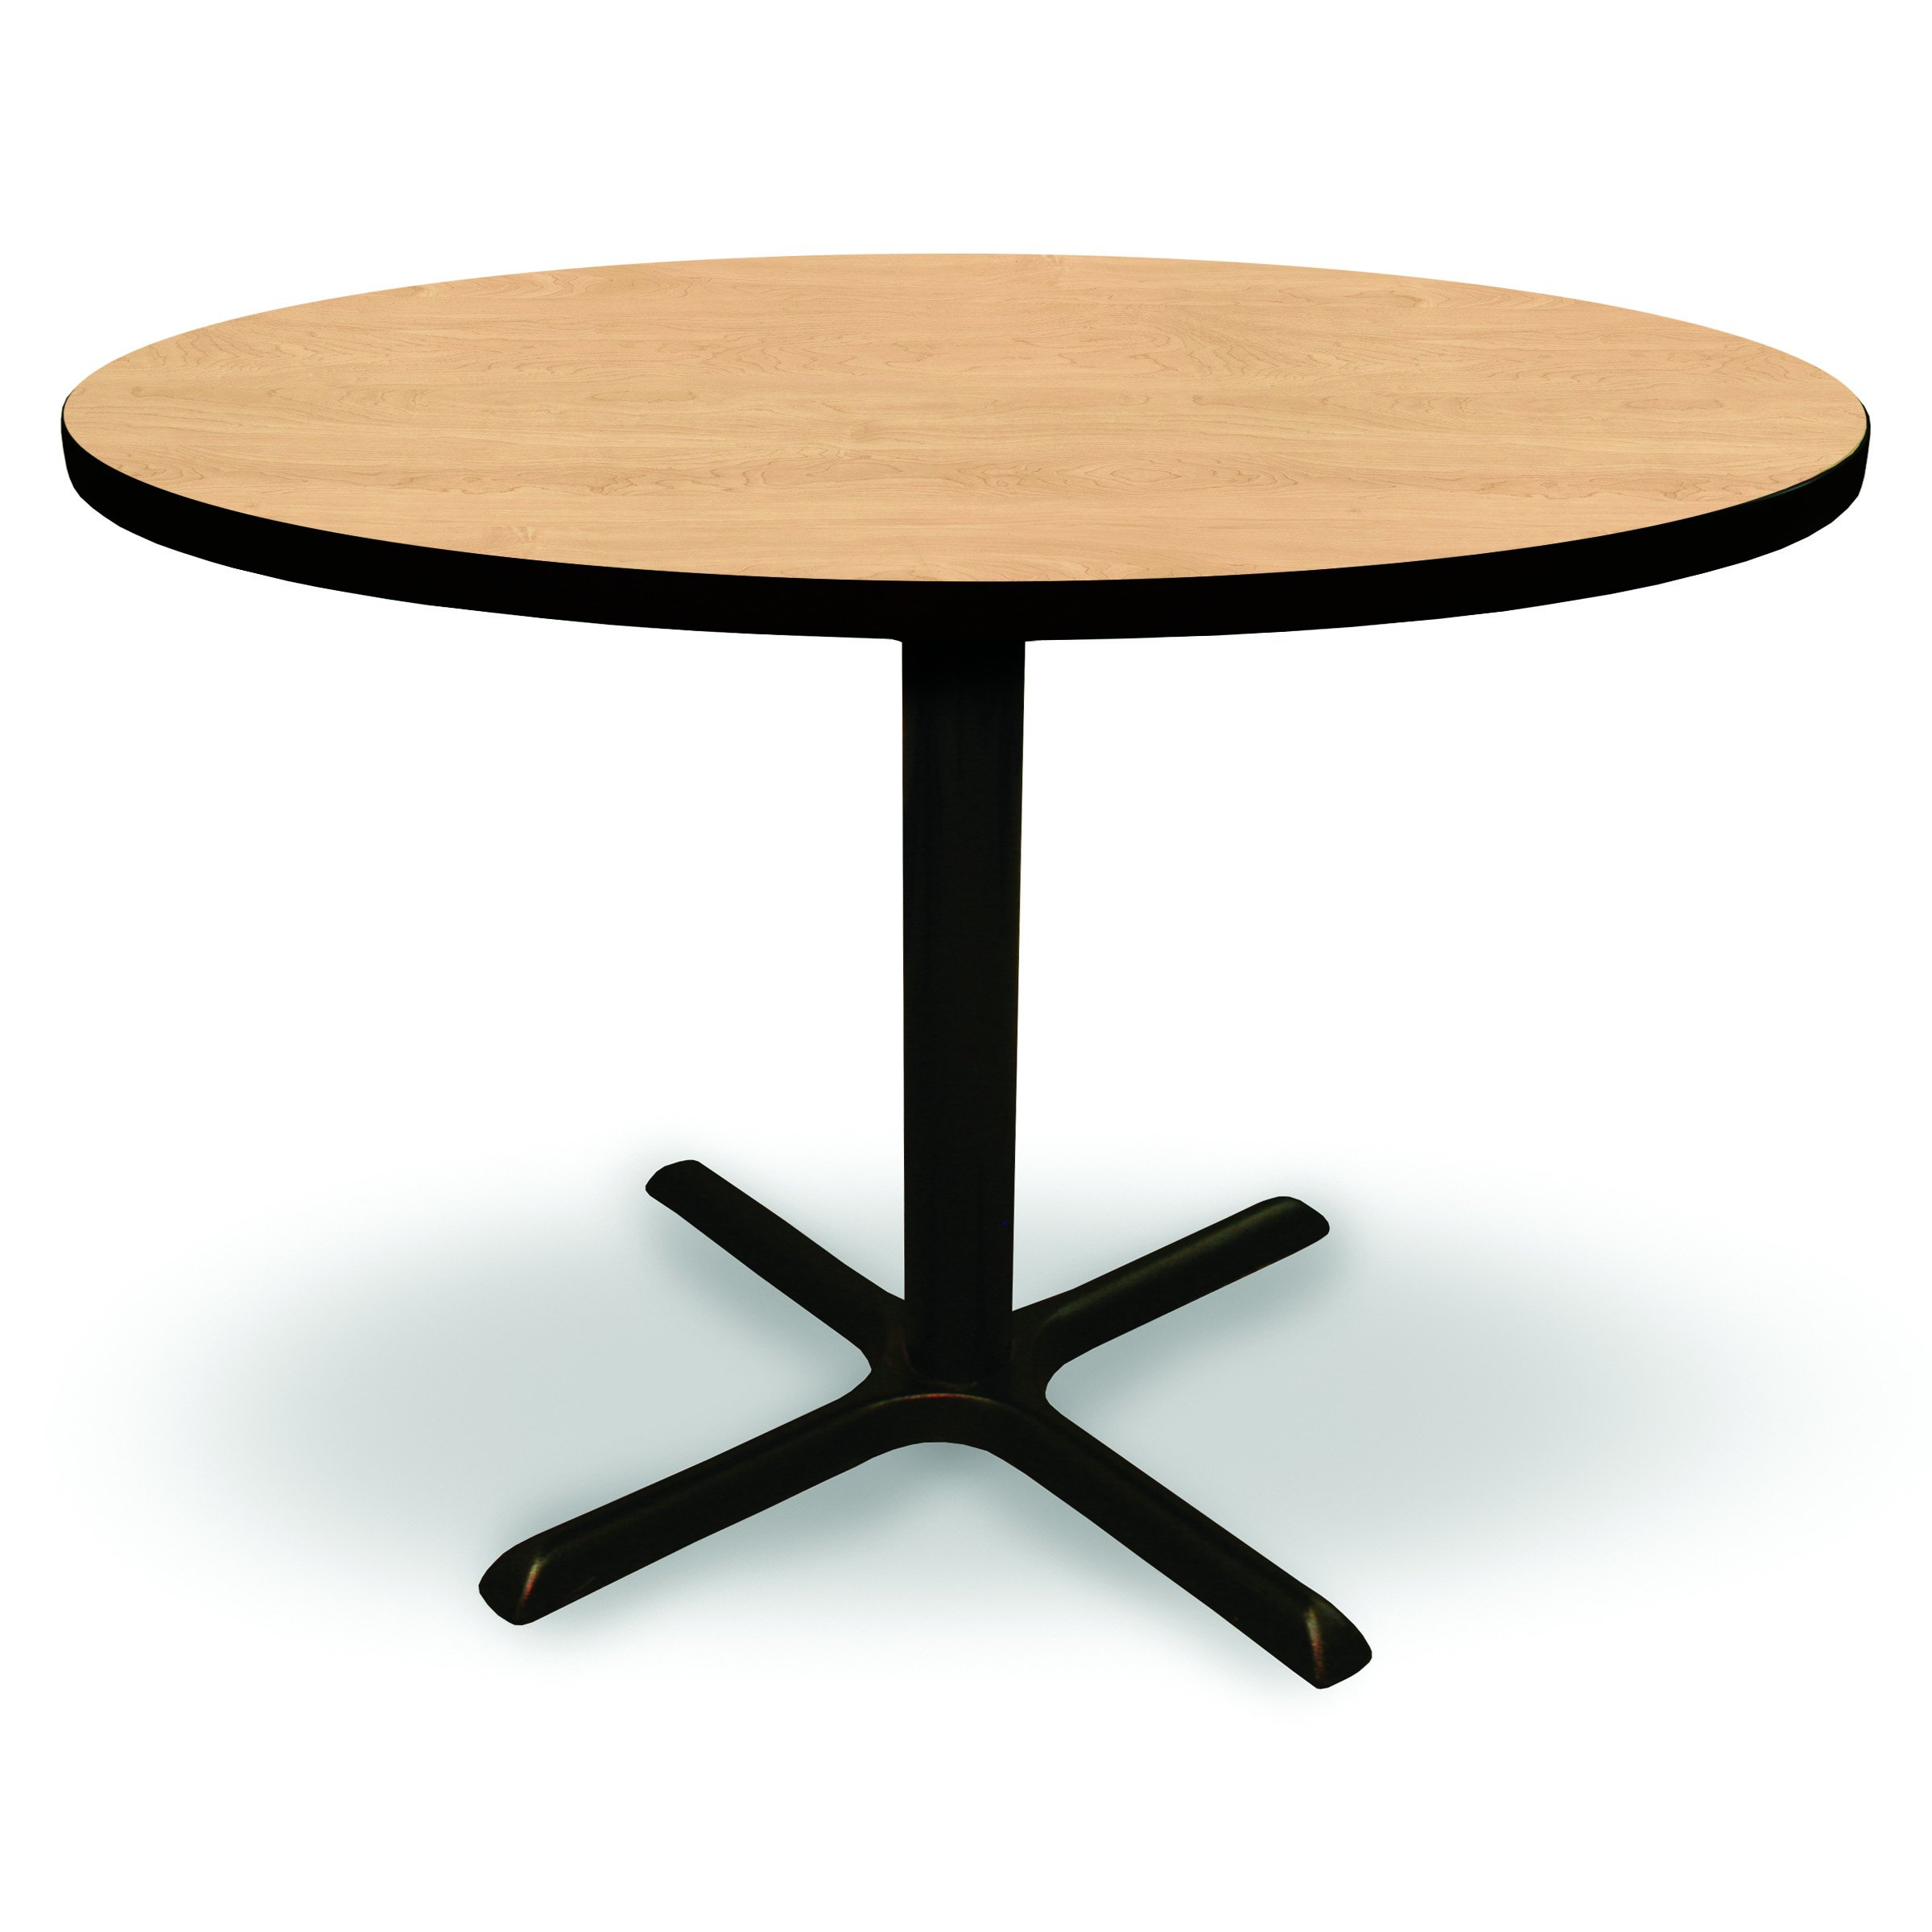 48'' Round Conference, Break Room, Multipurpose Table - Kensington Maple Laminate/Black Finish